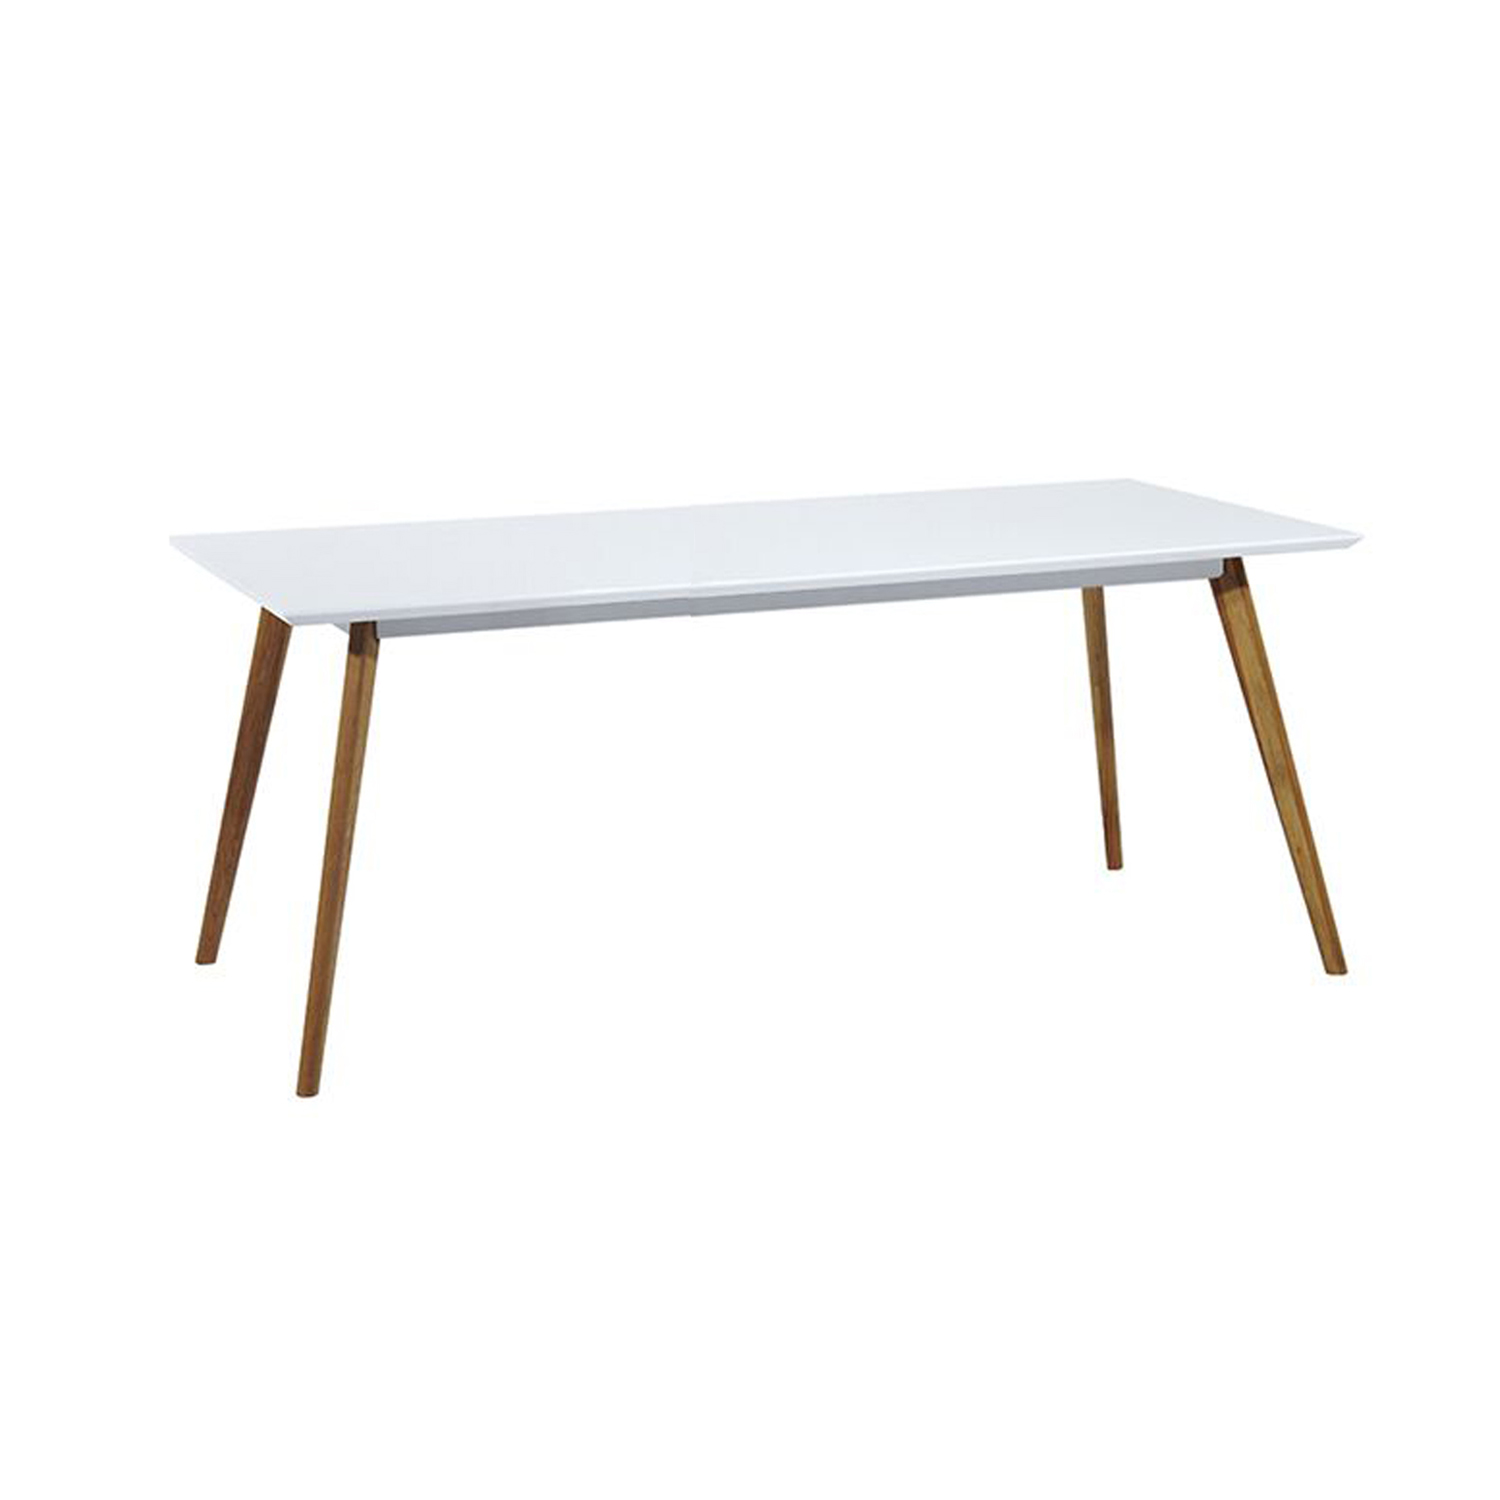 Furniture Source Philippines Nordic Dining Table 160 Cm White Natural